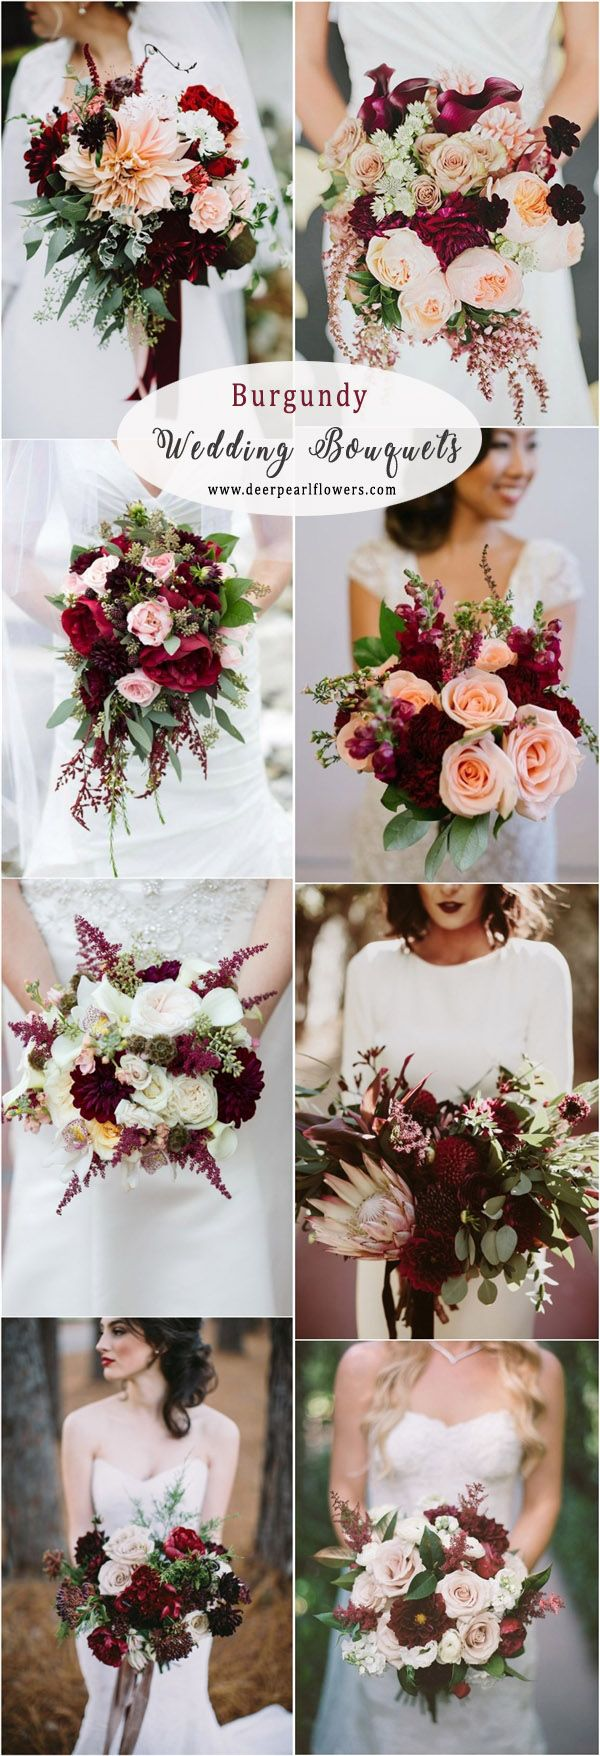 40 burgundy wedding ideas for autumn and winter weddings